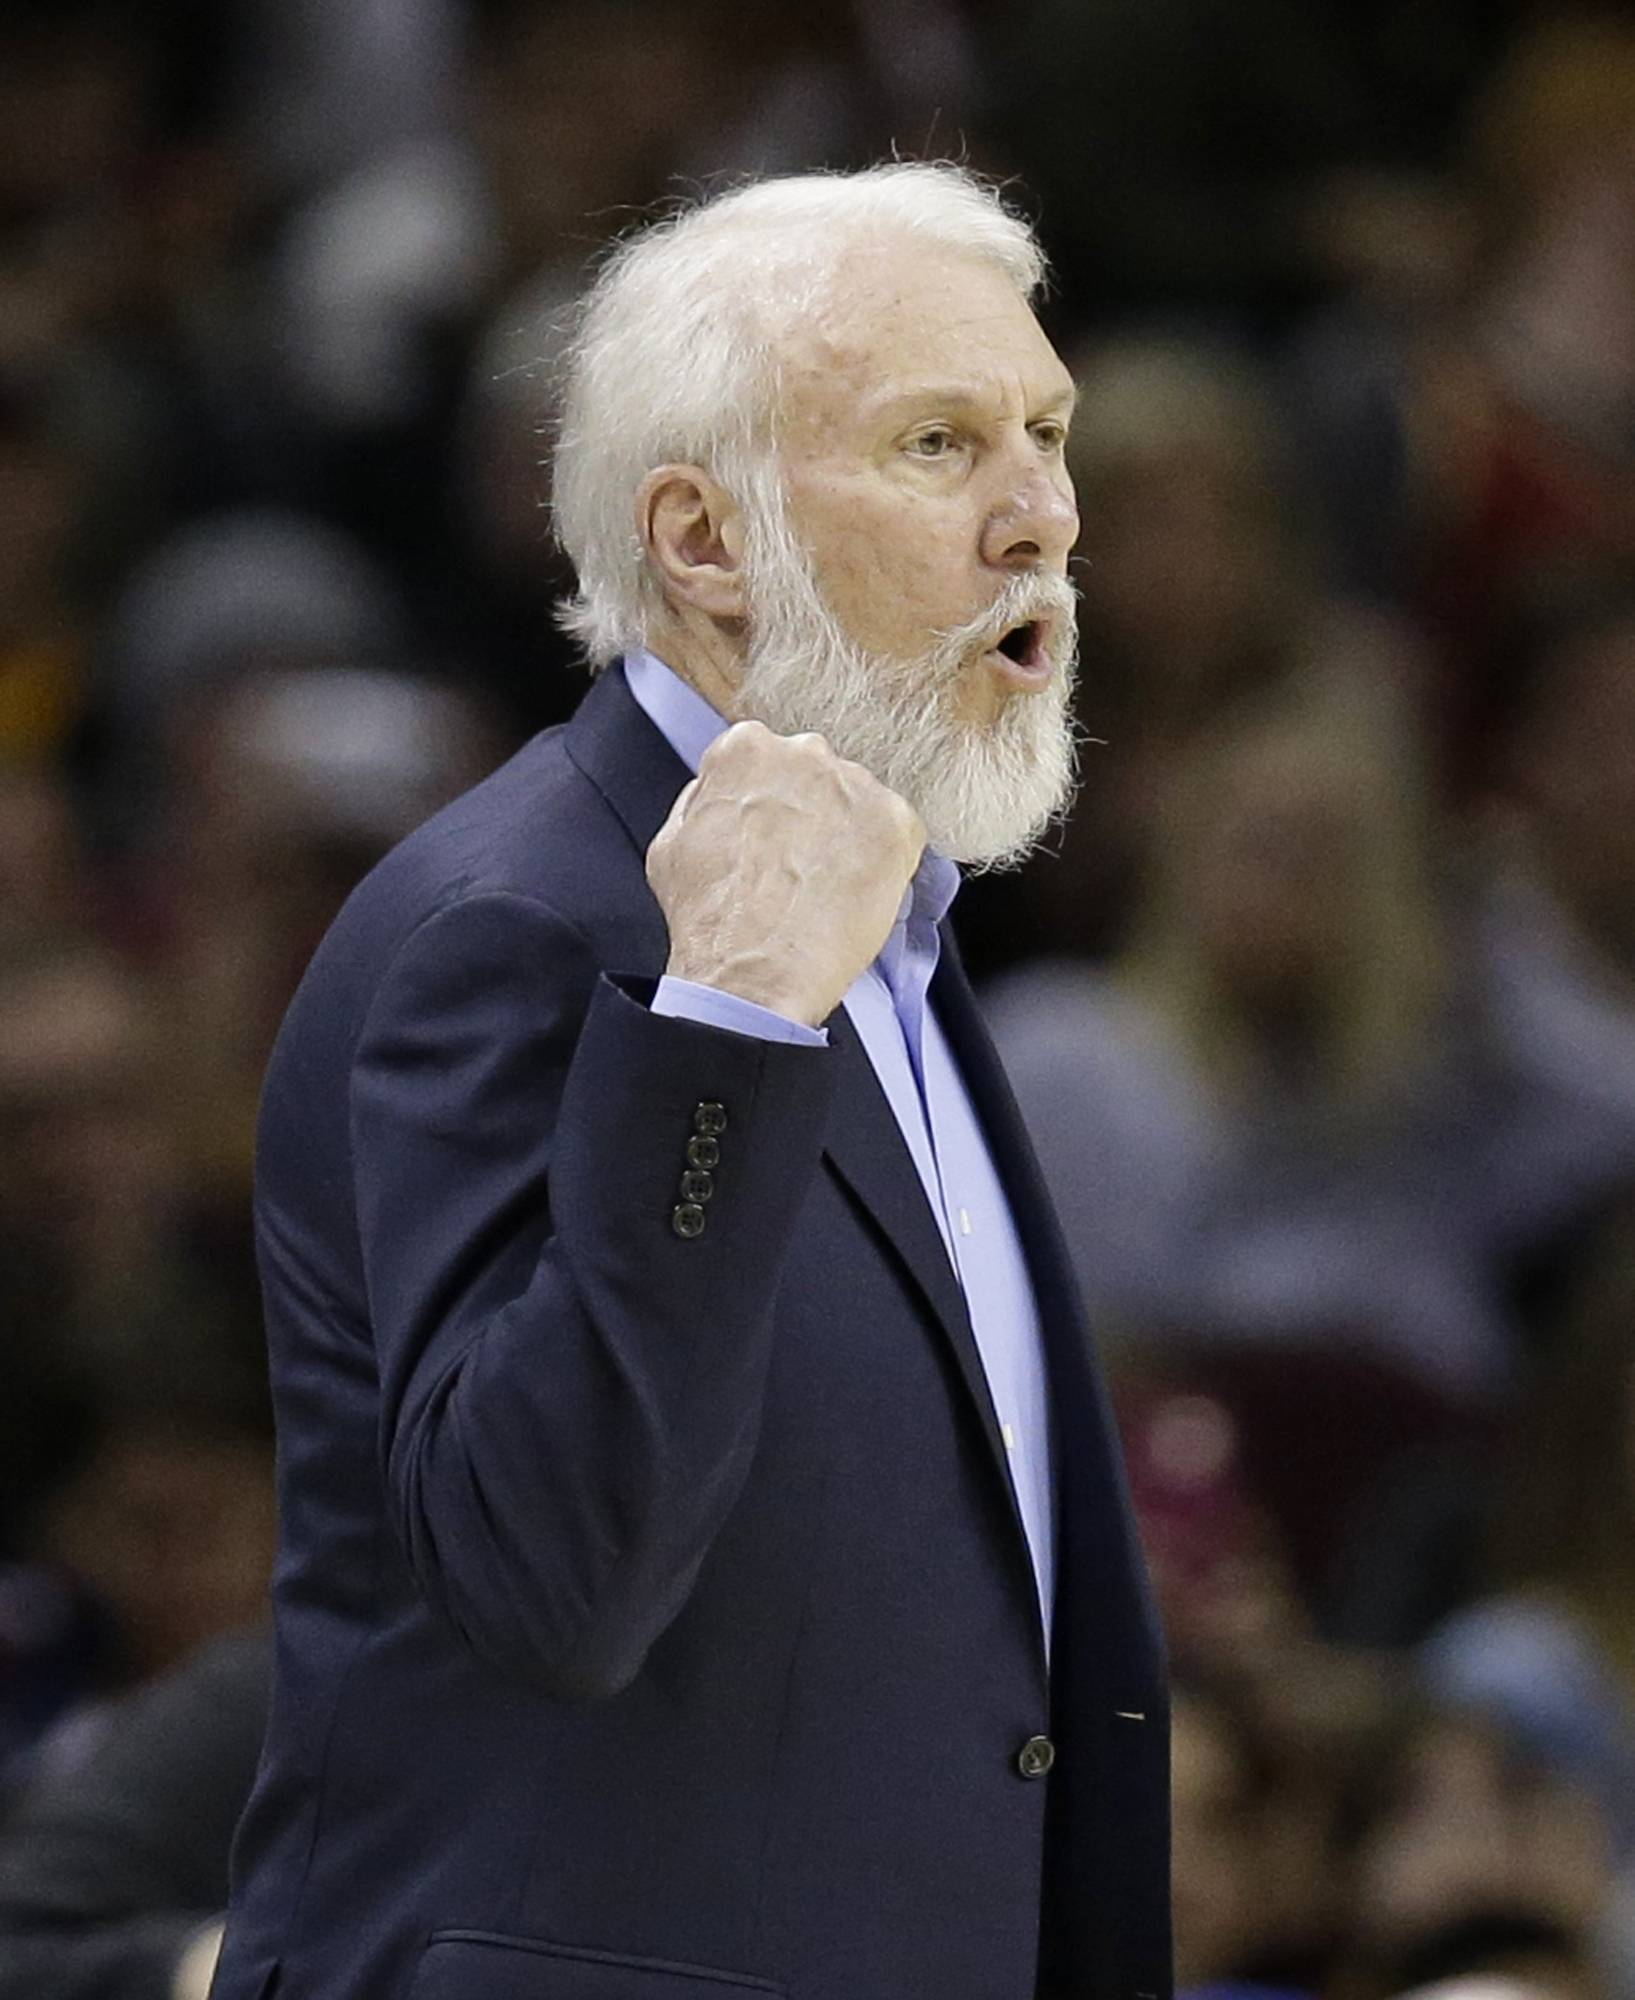 San Antonio Spurs head coach Gregg Popovich yells to players in the first half of an NBA basketball game against the Cleveland Cavaliers, Saturday, Jan. 21, 2017, in Cleveland. San Antonio's longtime coach, who has been highly critical of Donald Trump in the past, went on a lengthy rant about the newly sworn-in president on Saturday night, calling him a bully and saying he hopes he can change while in office. (AP Photo/Tony Dejak)